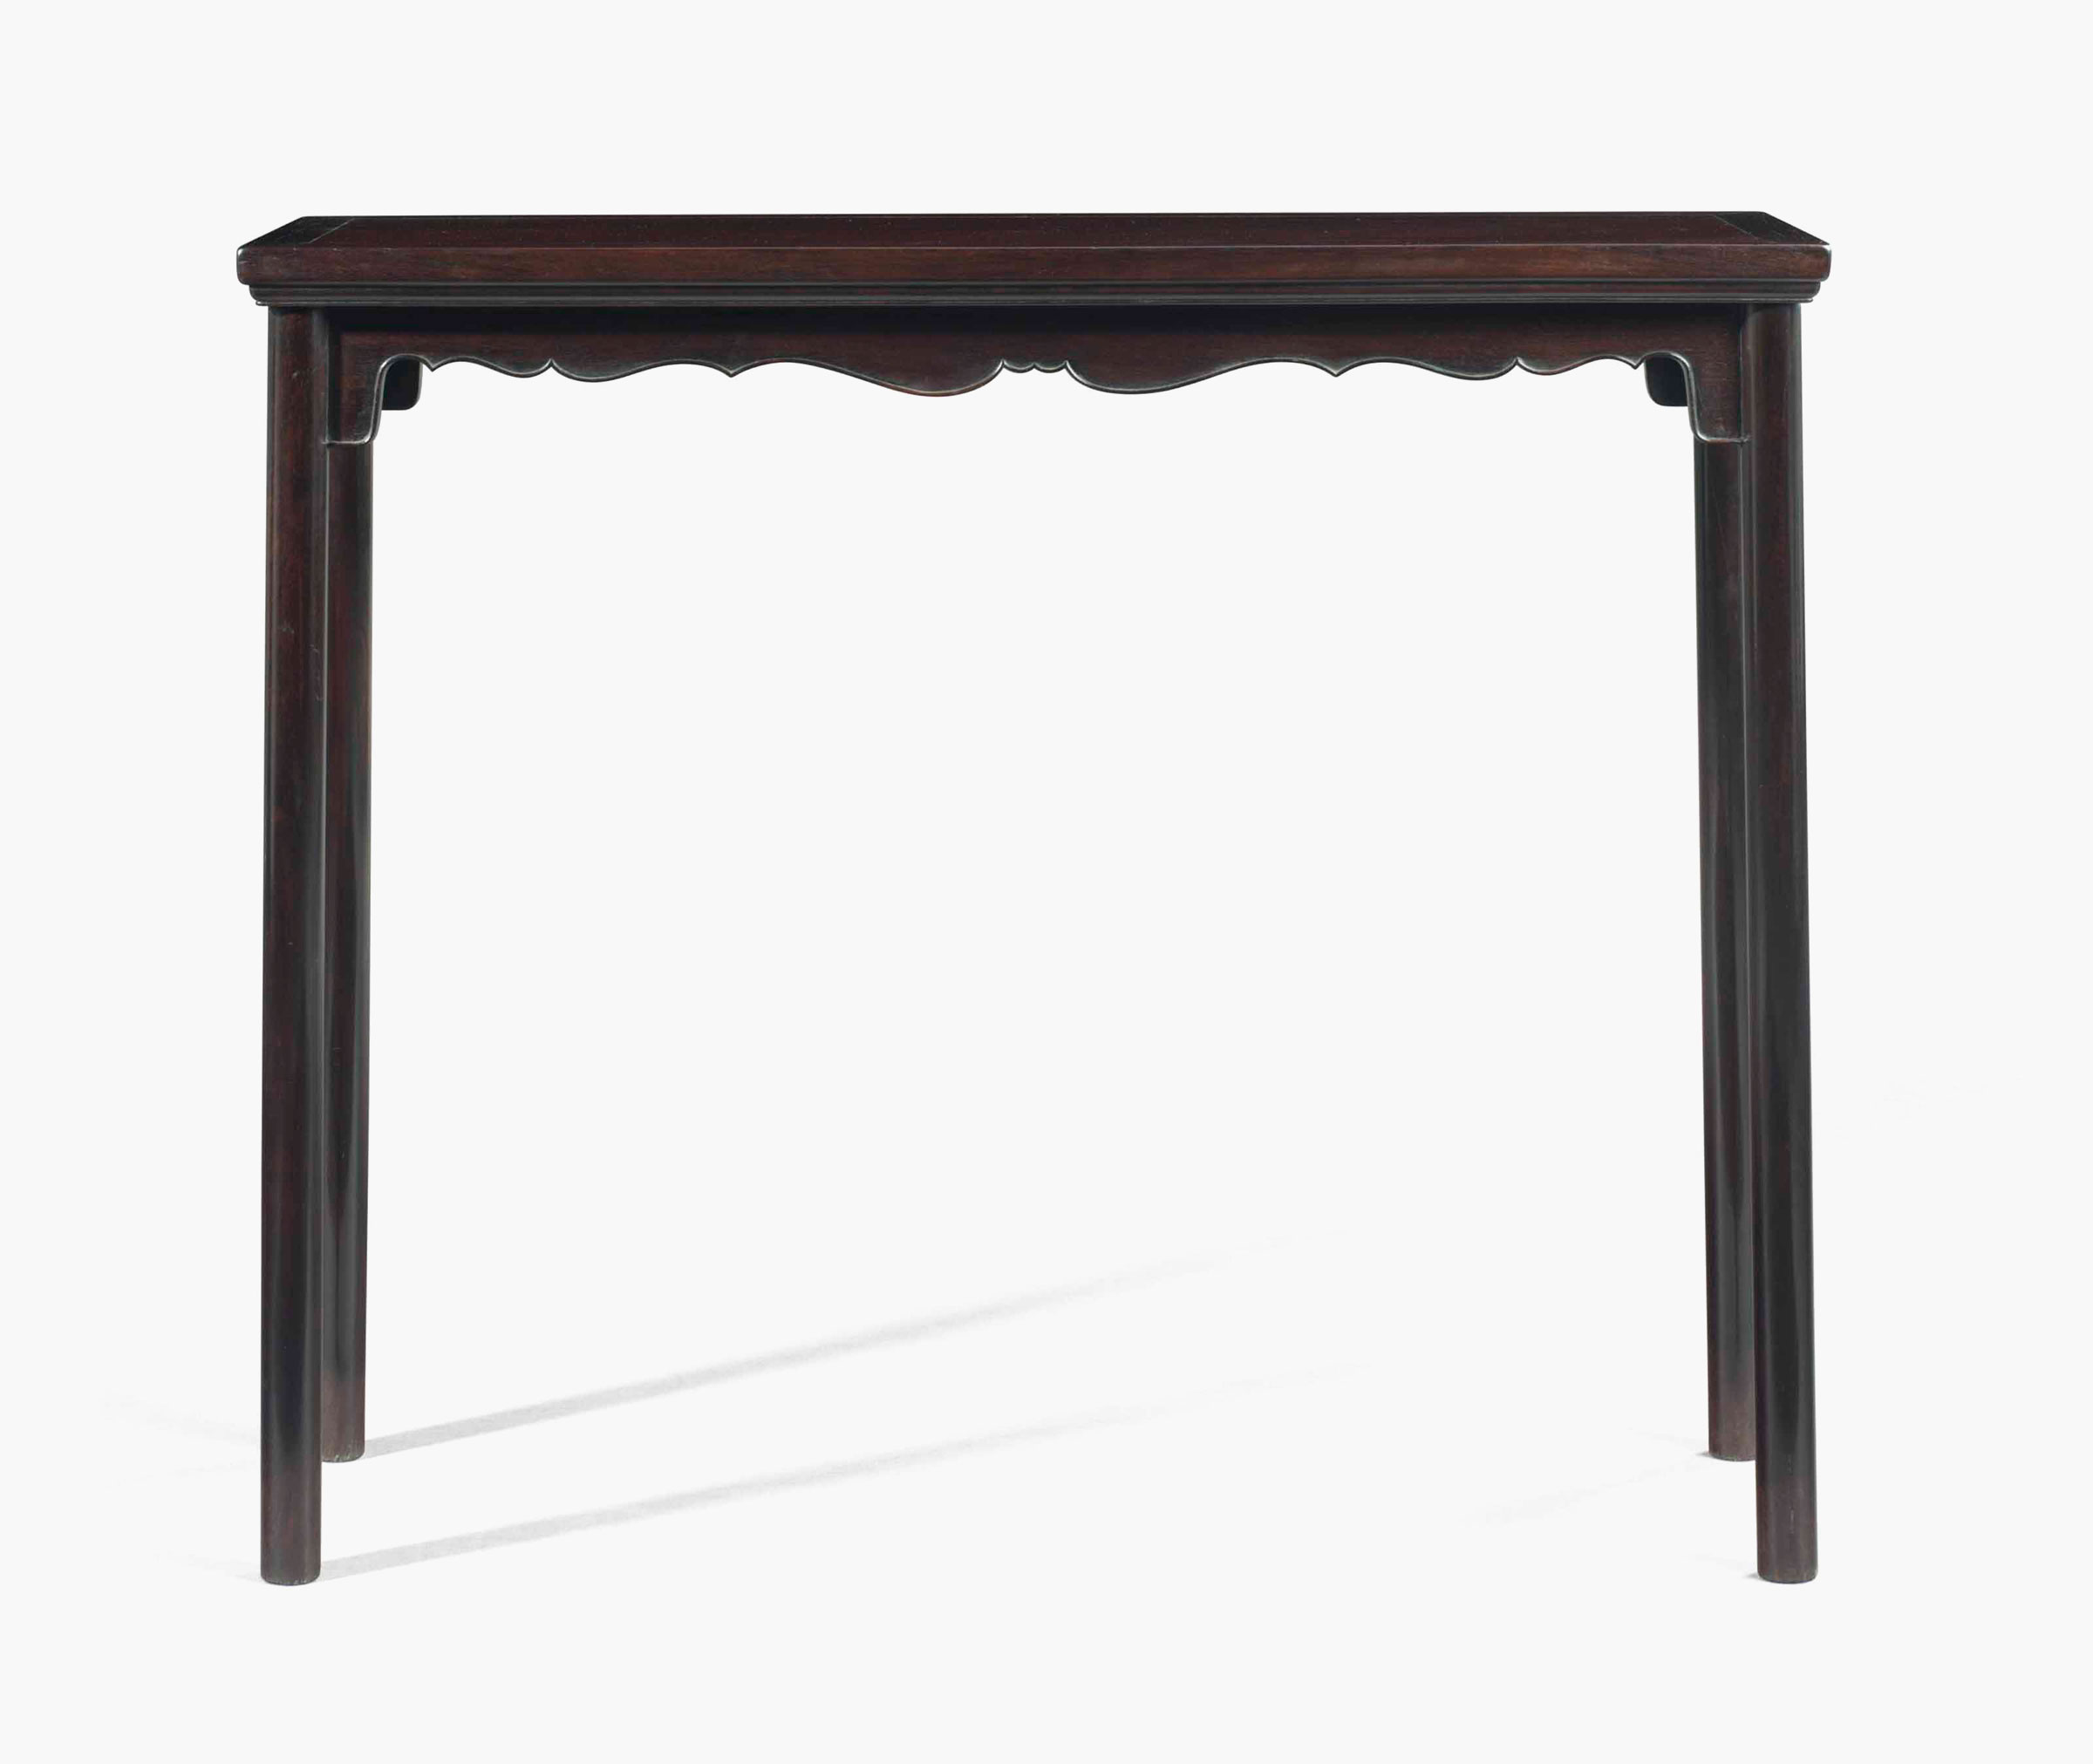 A Very Rare Narrow Zitan Side Table, Tiaozhuo. Early Qing Dynasty, 17th